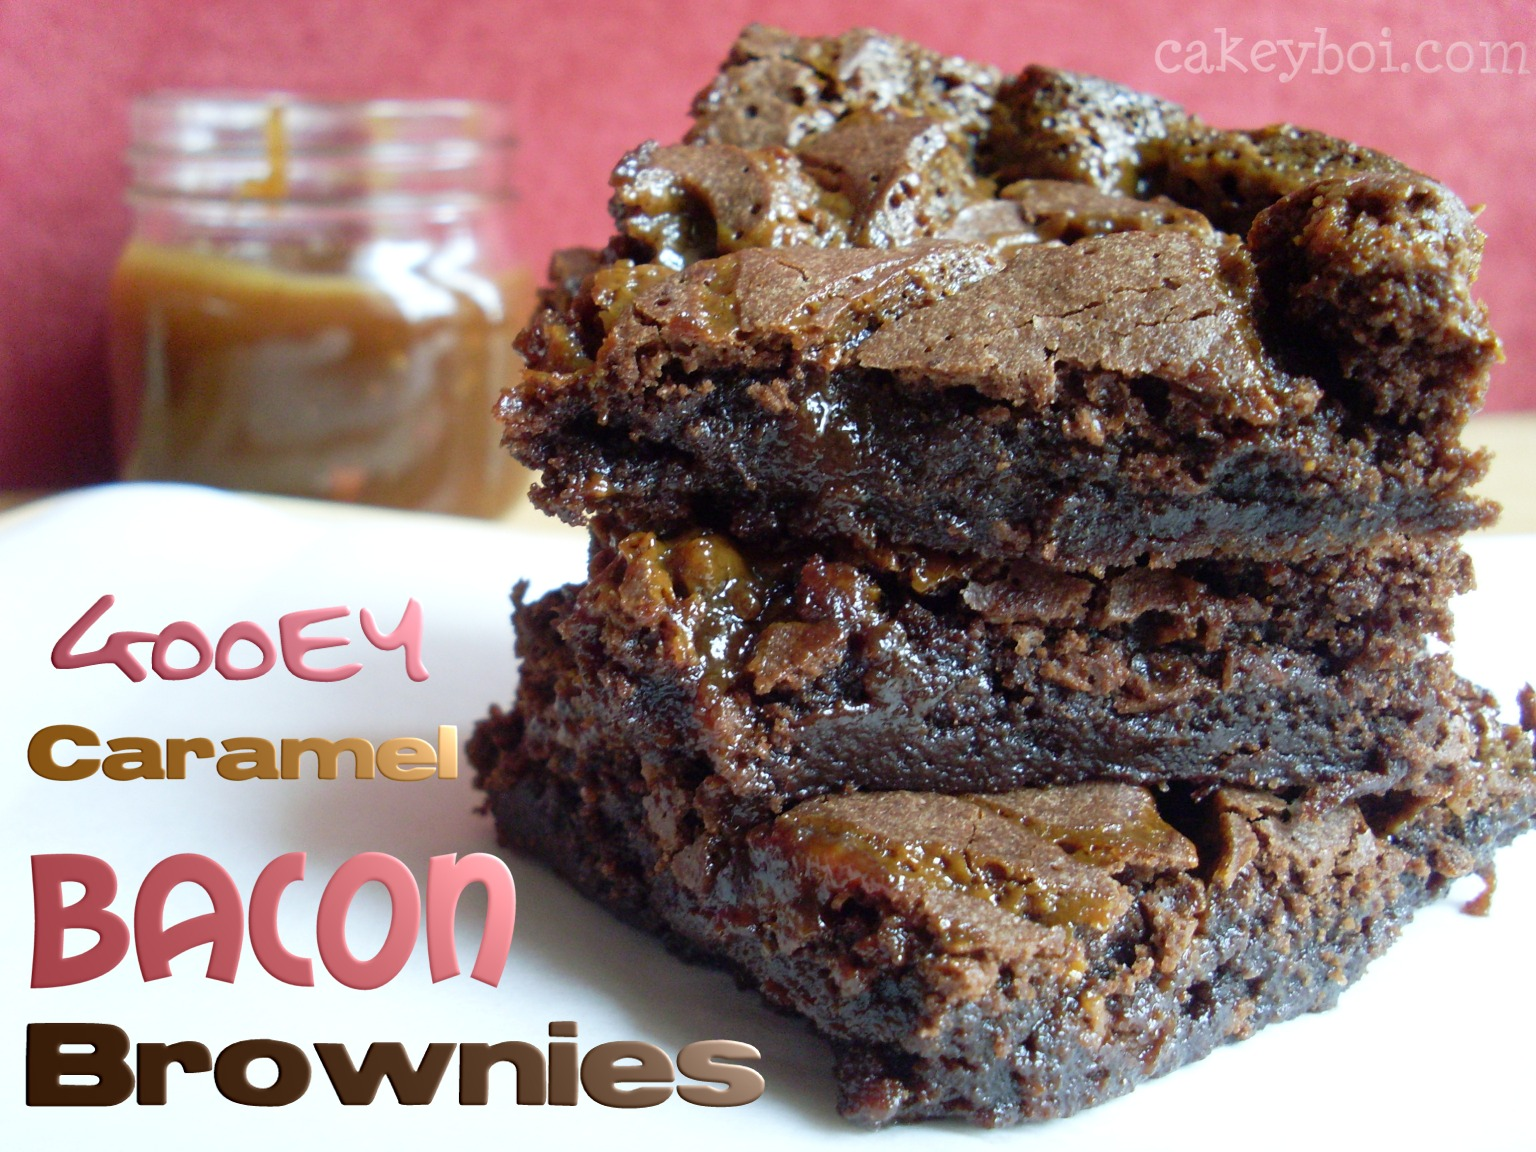 Gooey Caramel Bacon Brownies